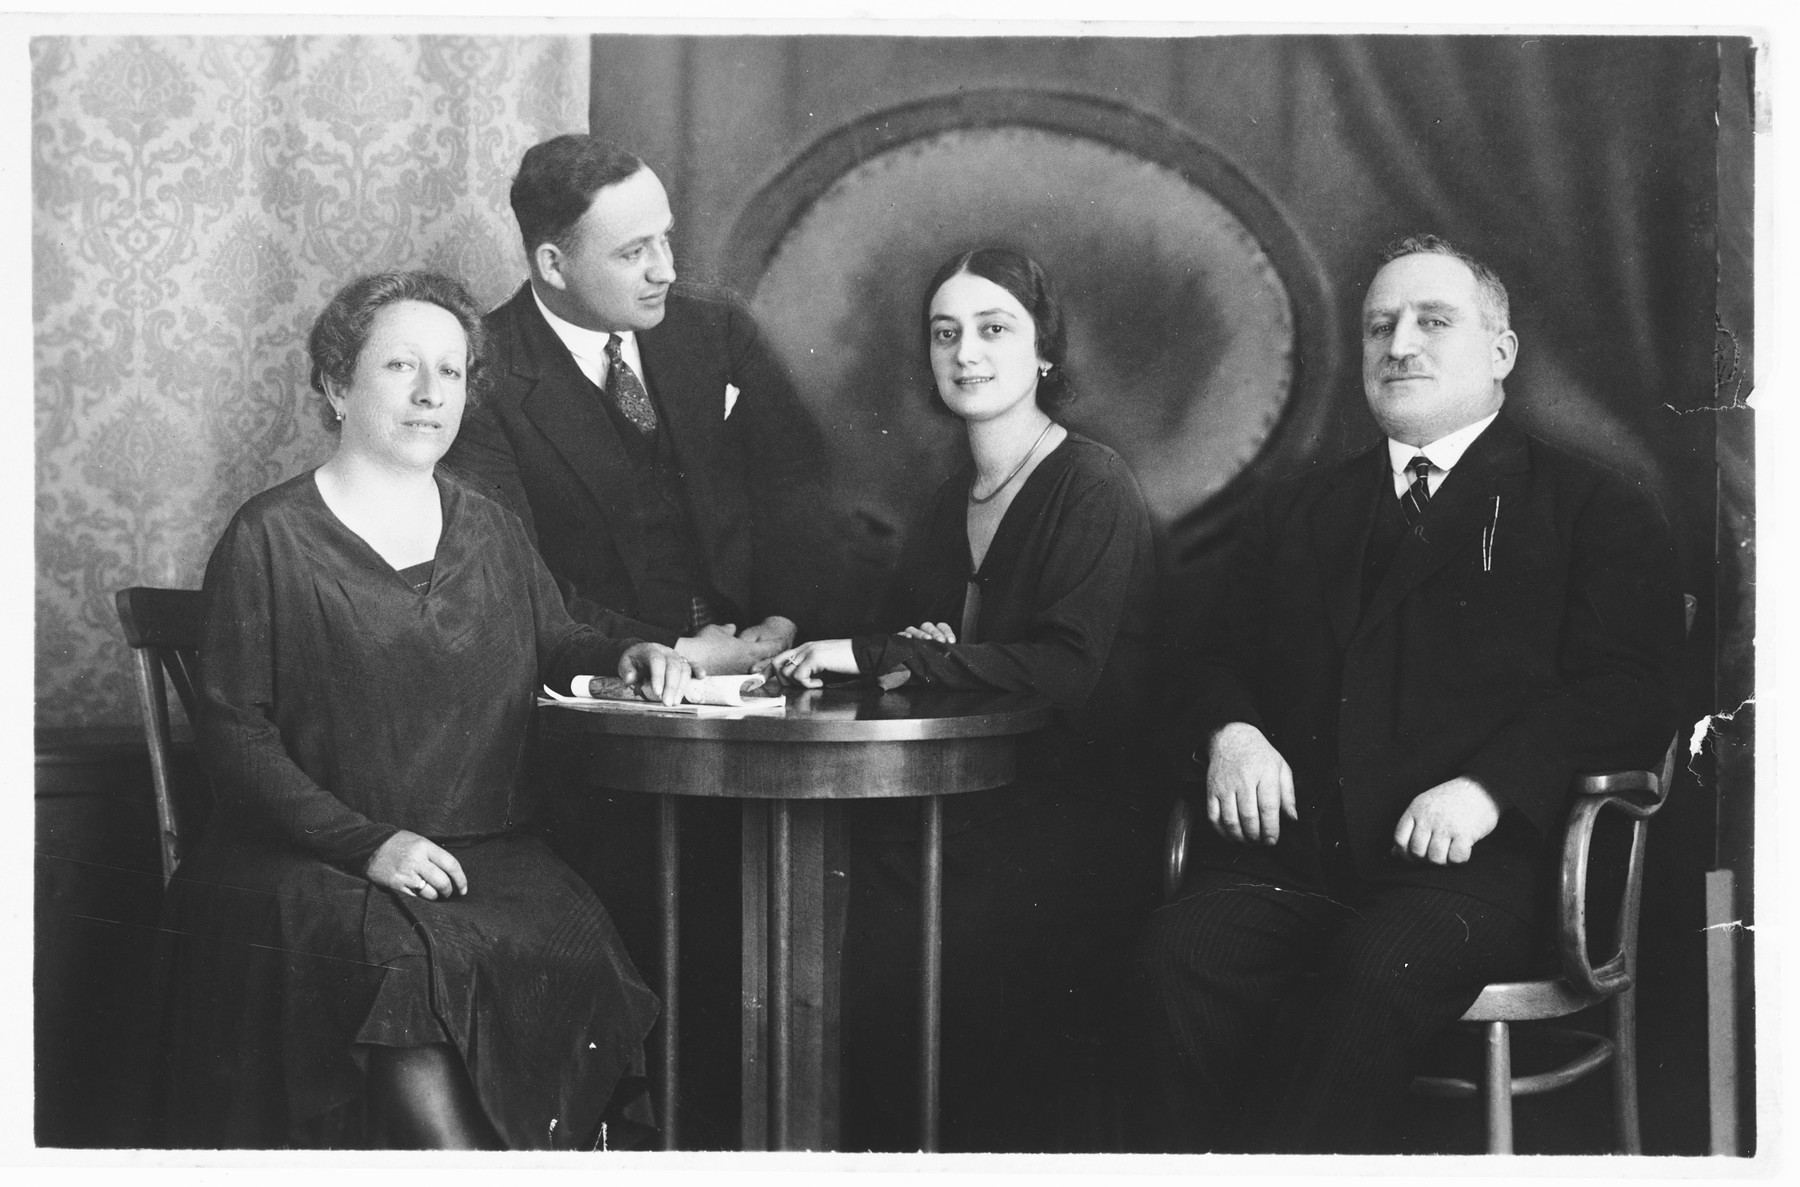 Studio portrait of a Jewish family taken on the occasion of the engagement of their children.  Pictured are Marko Spitzer and Ilonka Krasso (center) with Marko's parents.